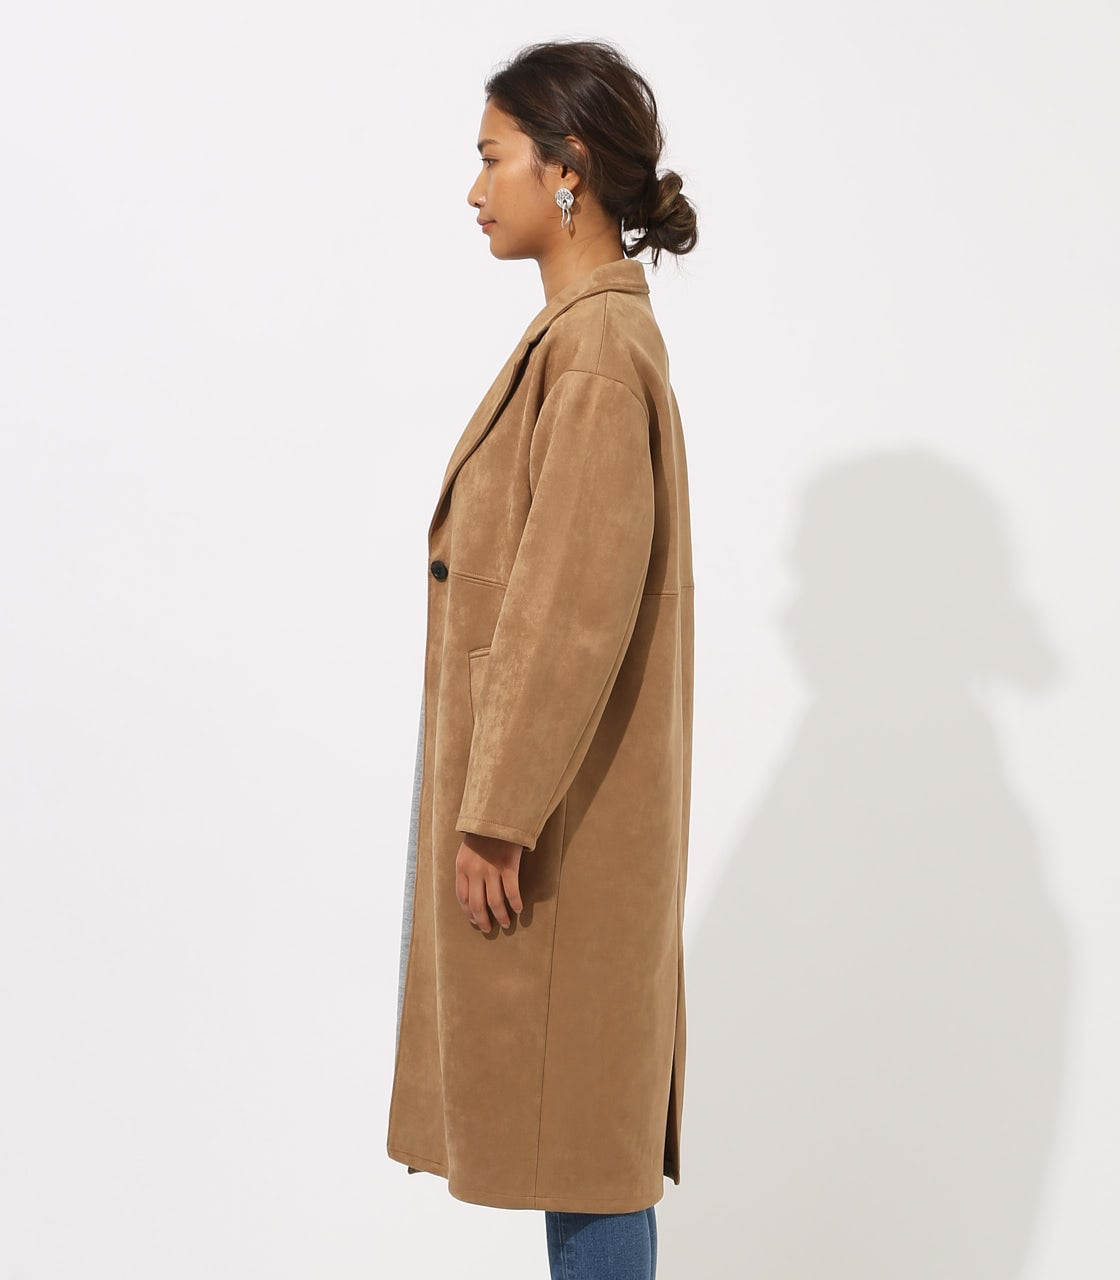 【AZUL BY MOUSSY】FAKE SUEDE CHESTER COAT 詳細画像 CAM 6